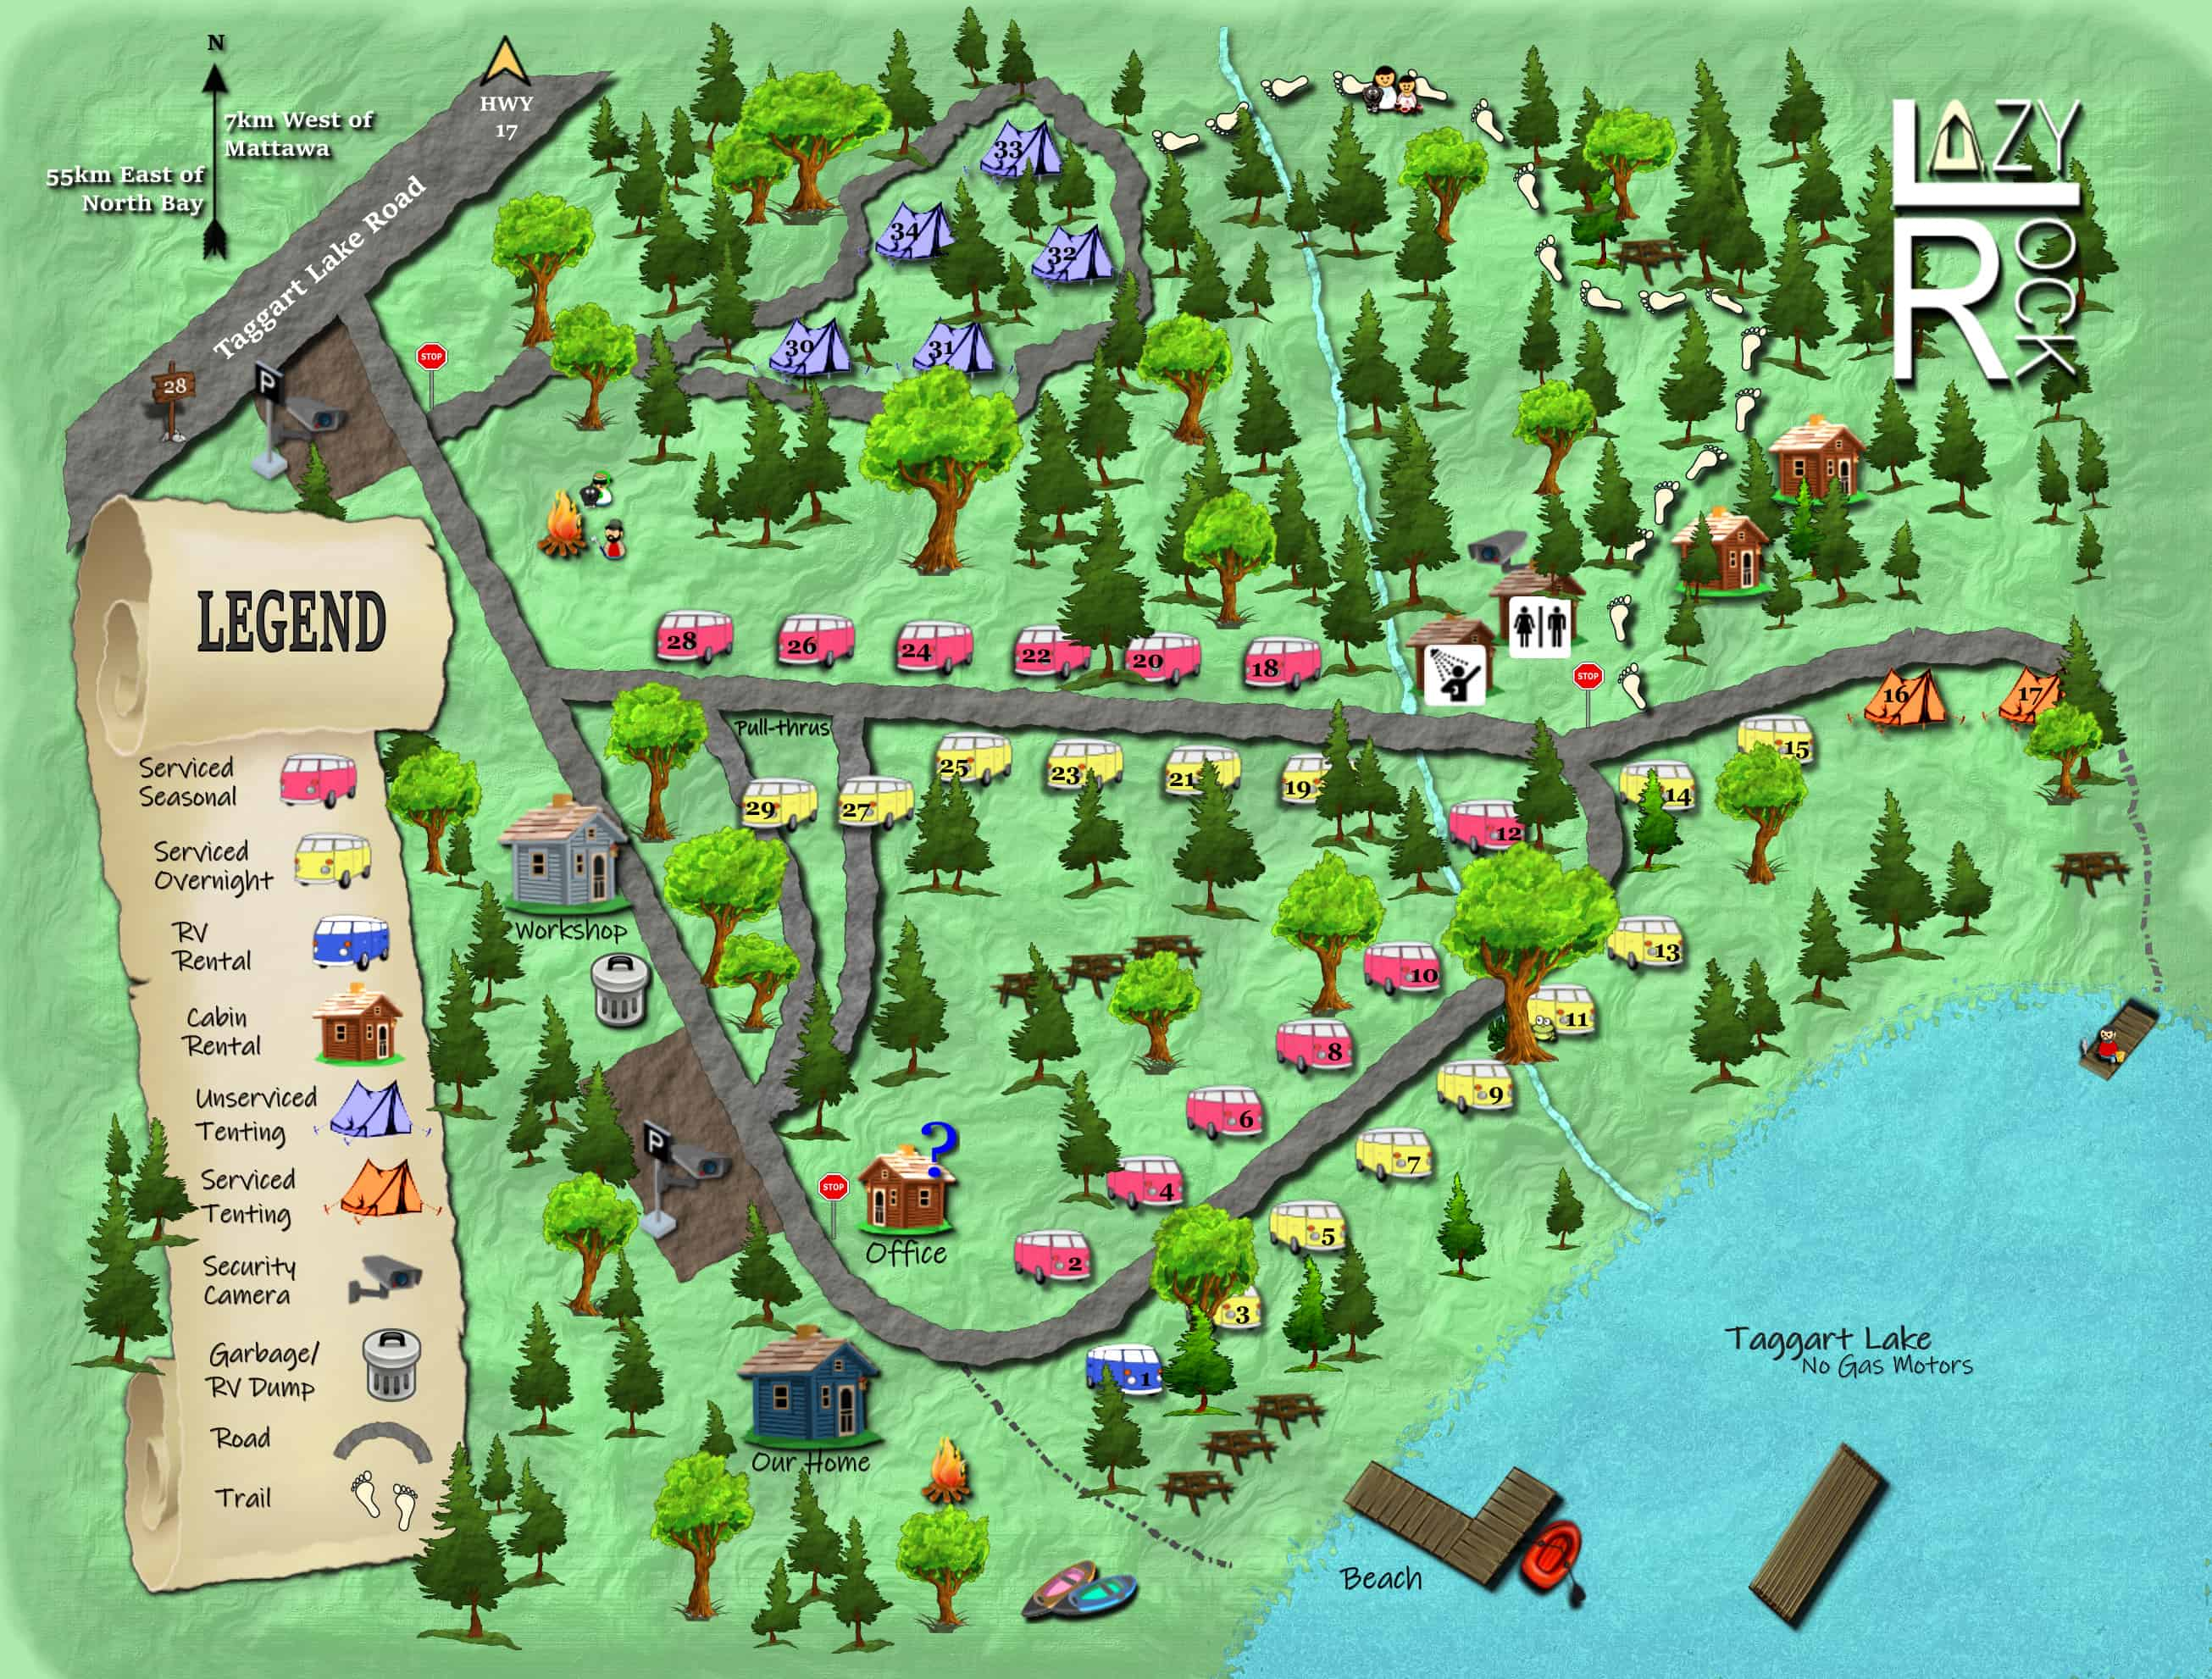 Lazy Rock Campground Map 2019